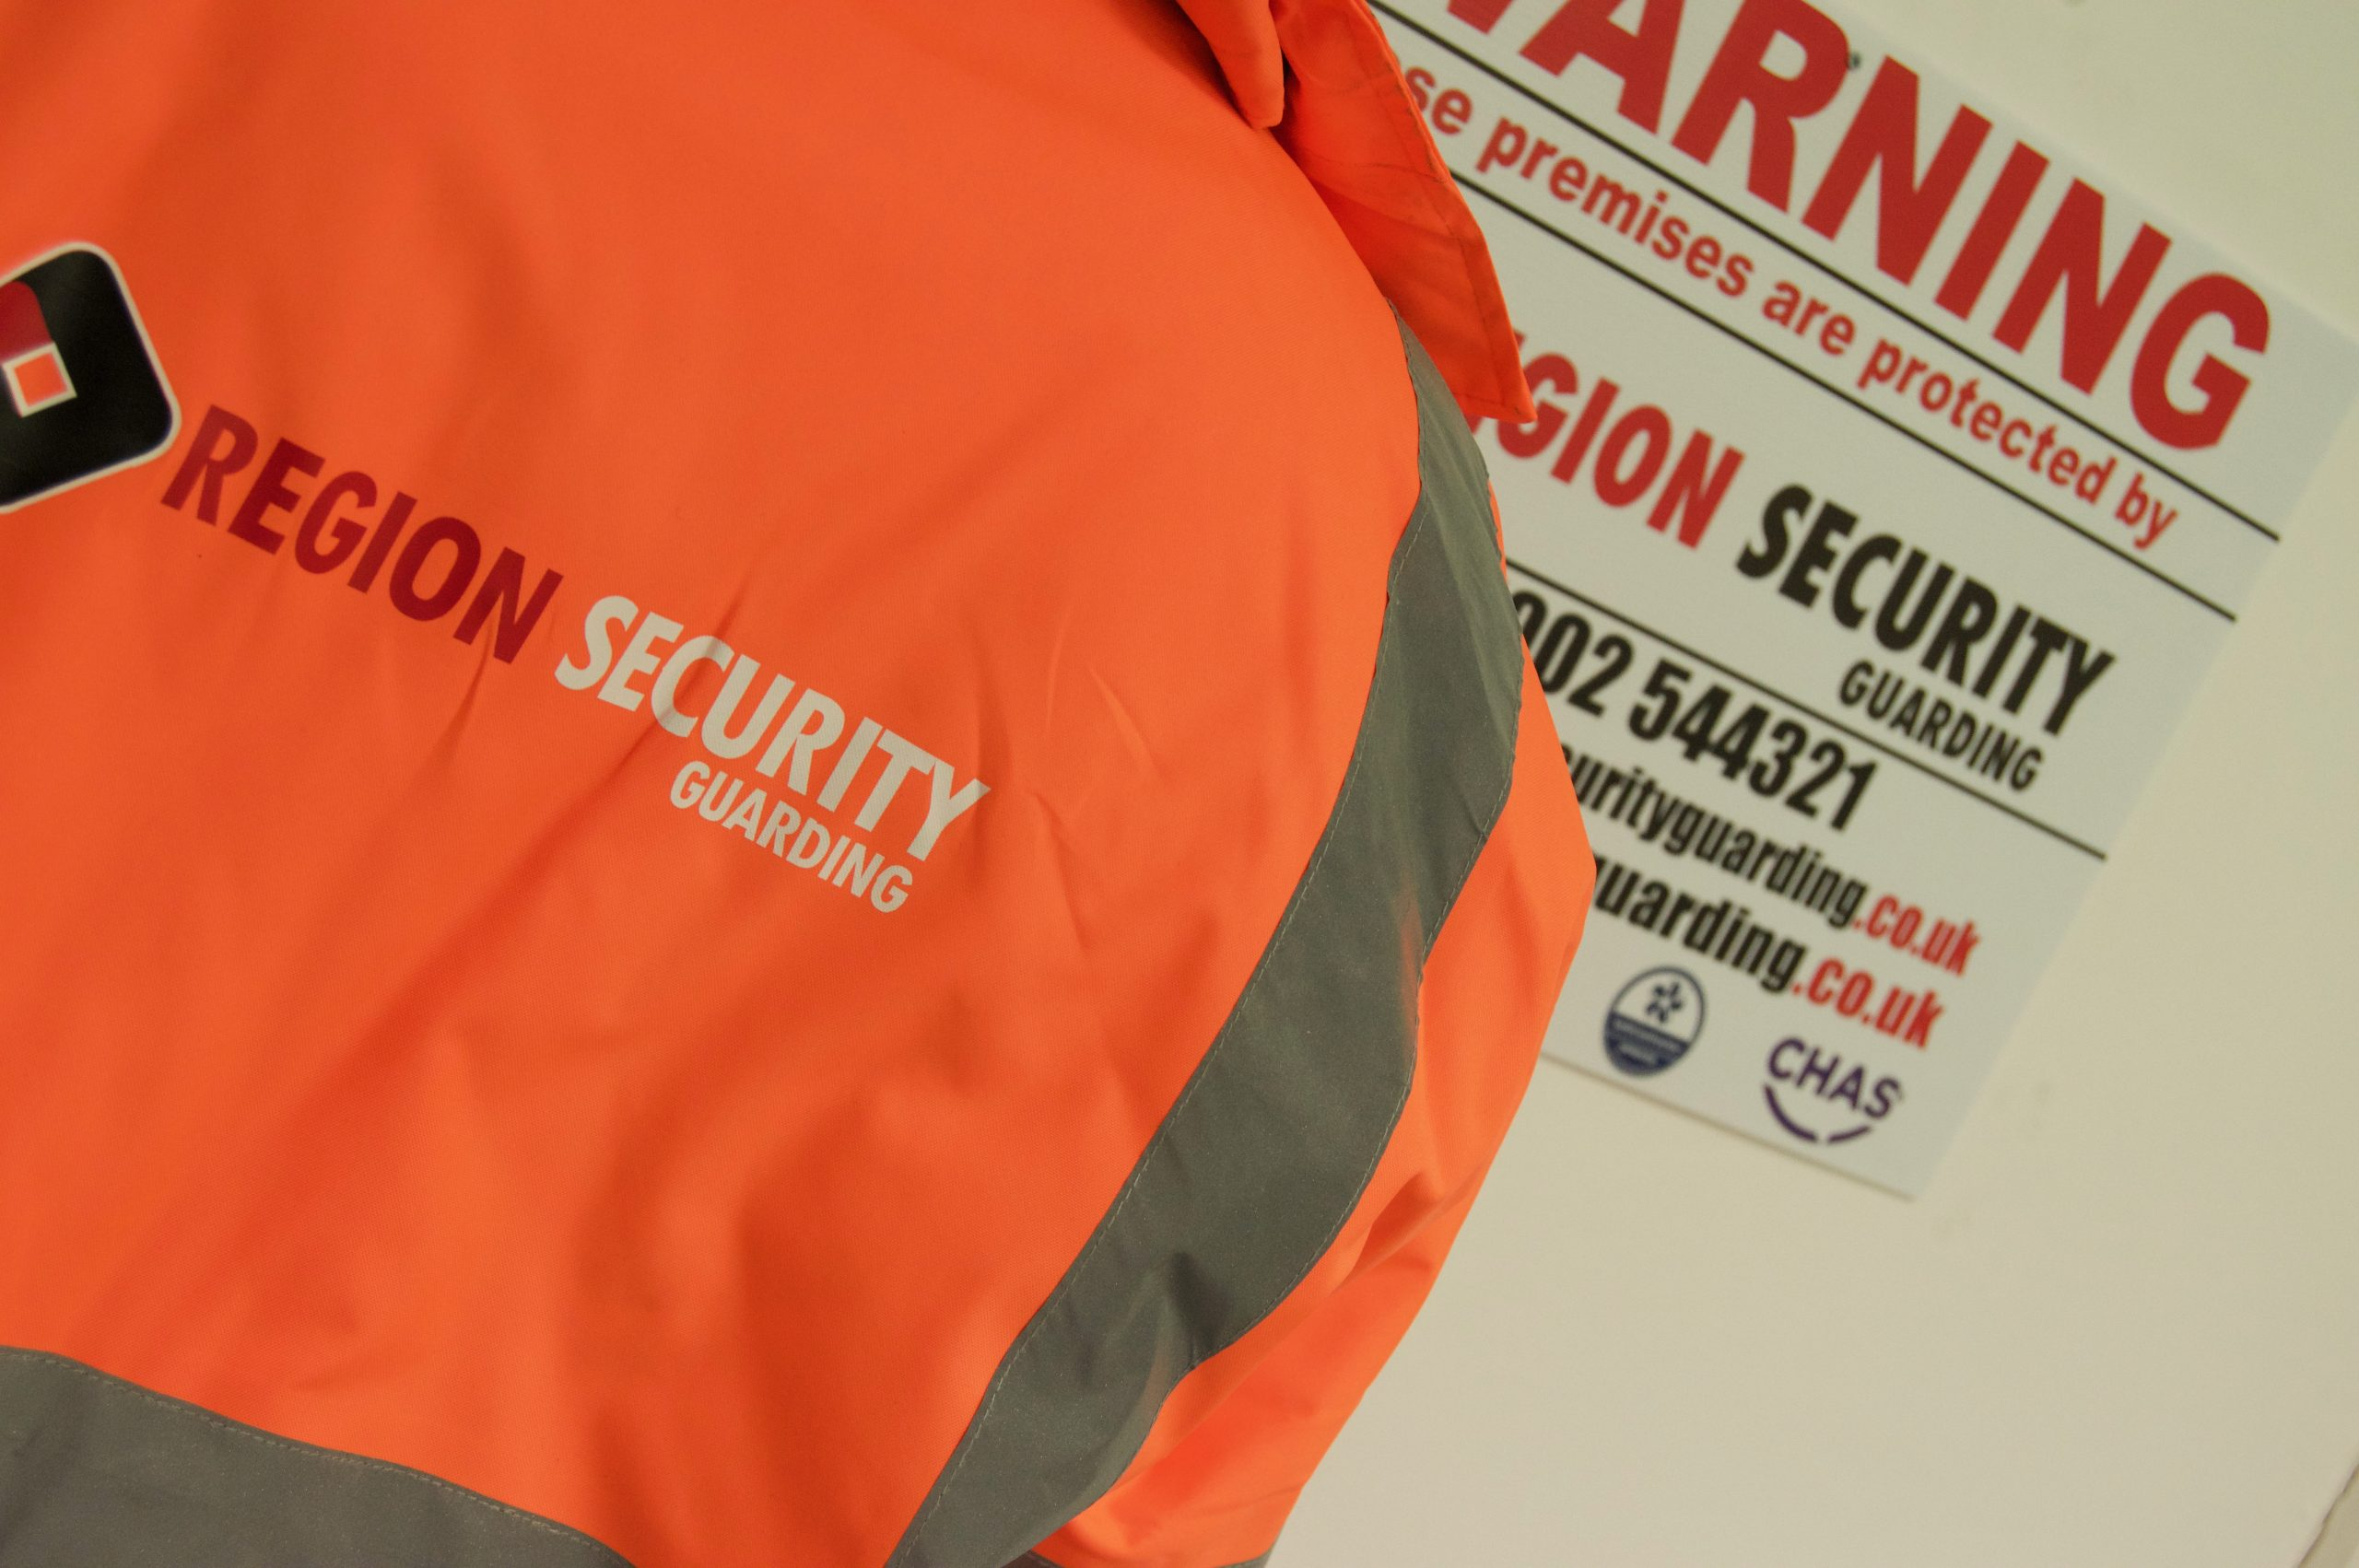 factory security guard services